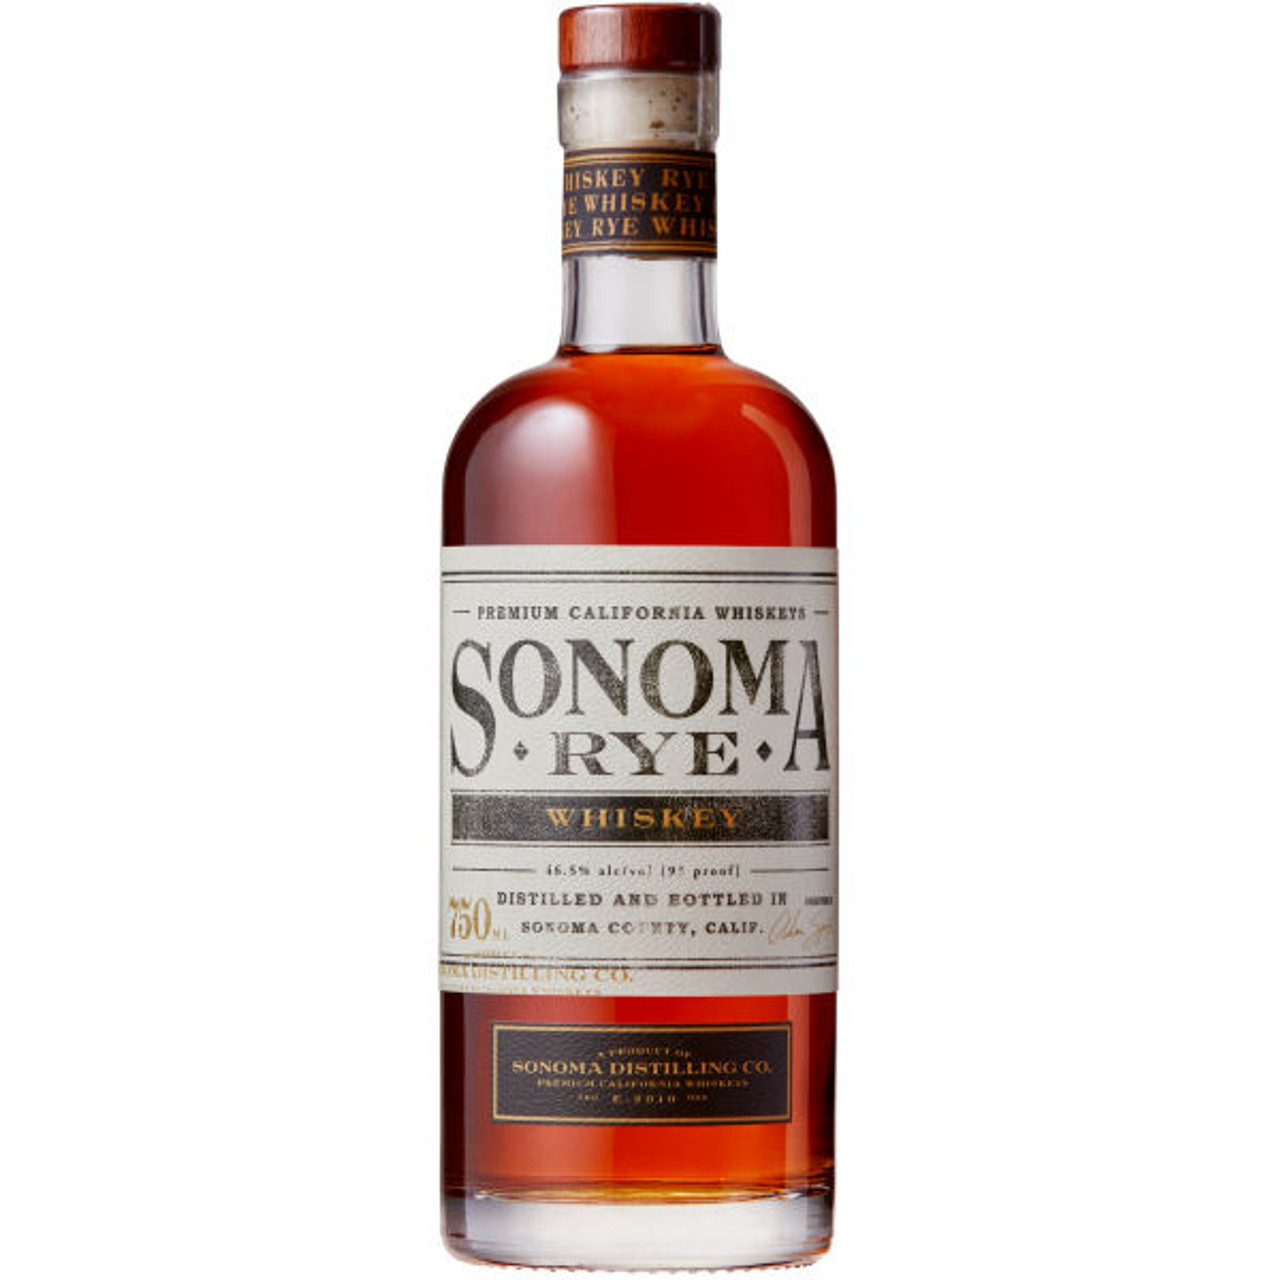 Sonoma Distilling Sonoma Rye Whiskey 750ml